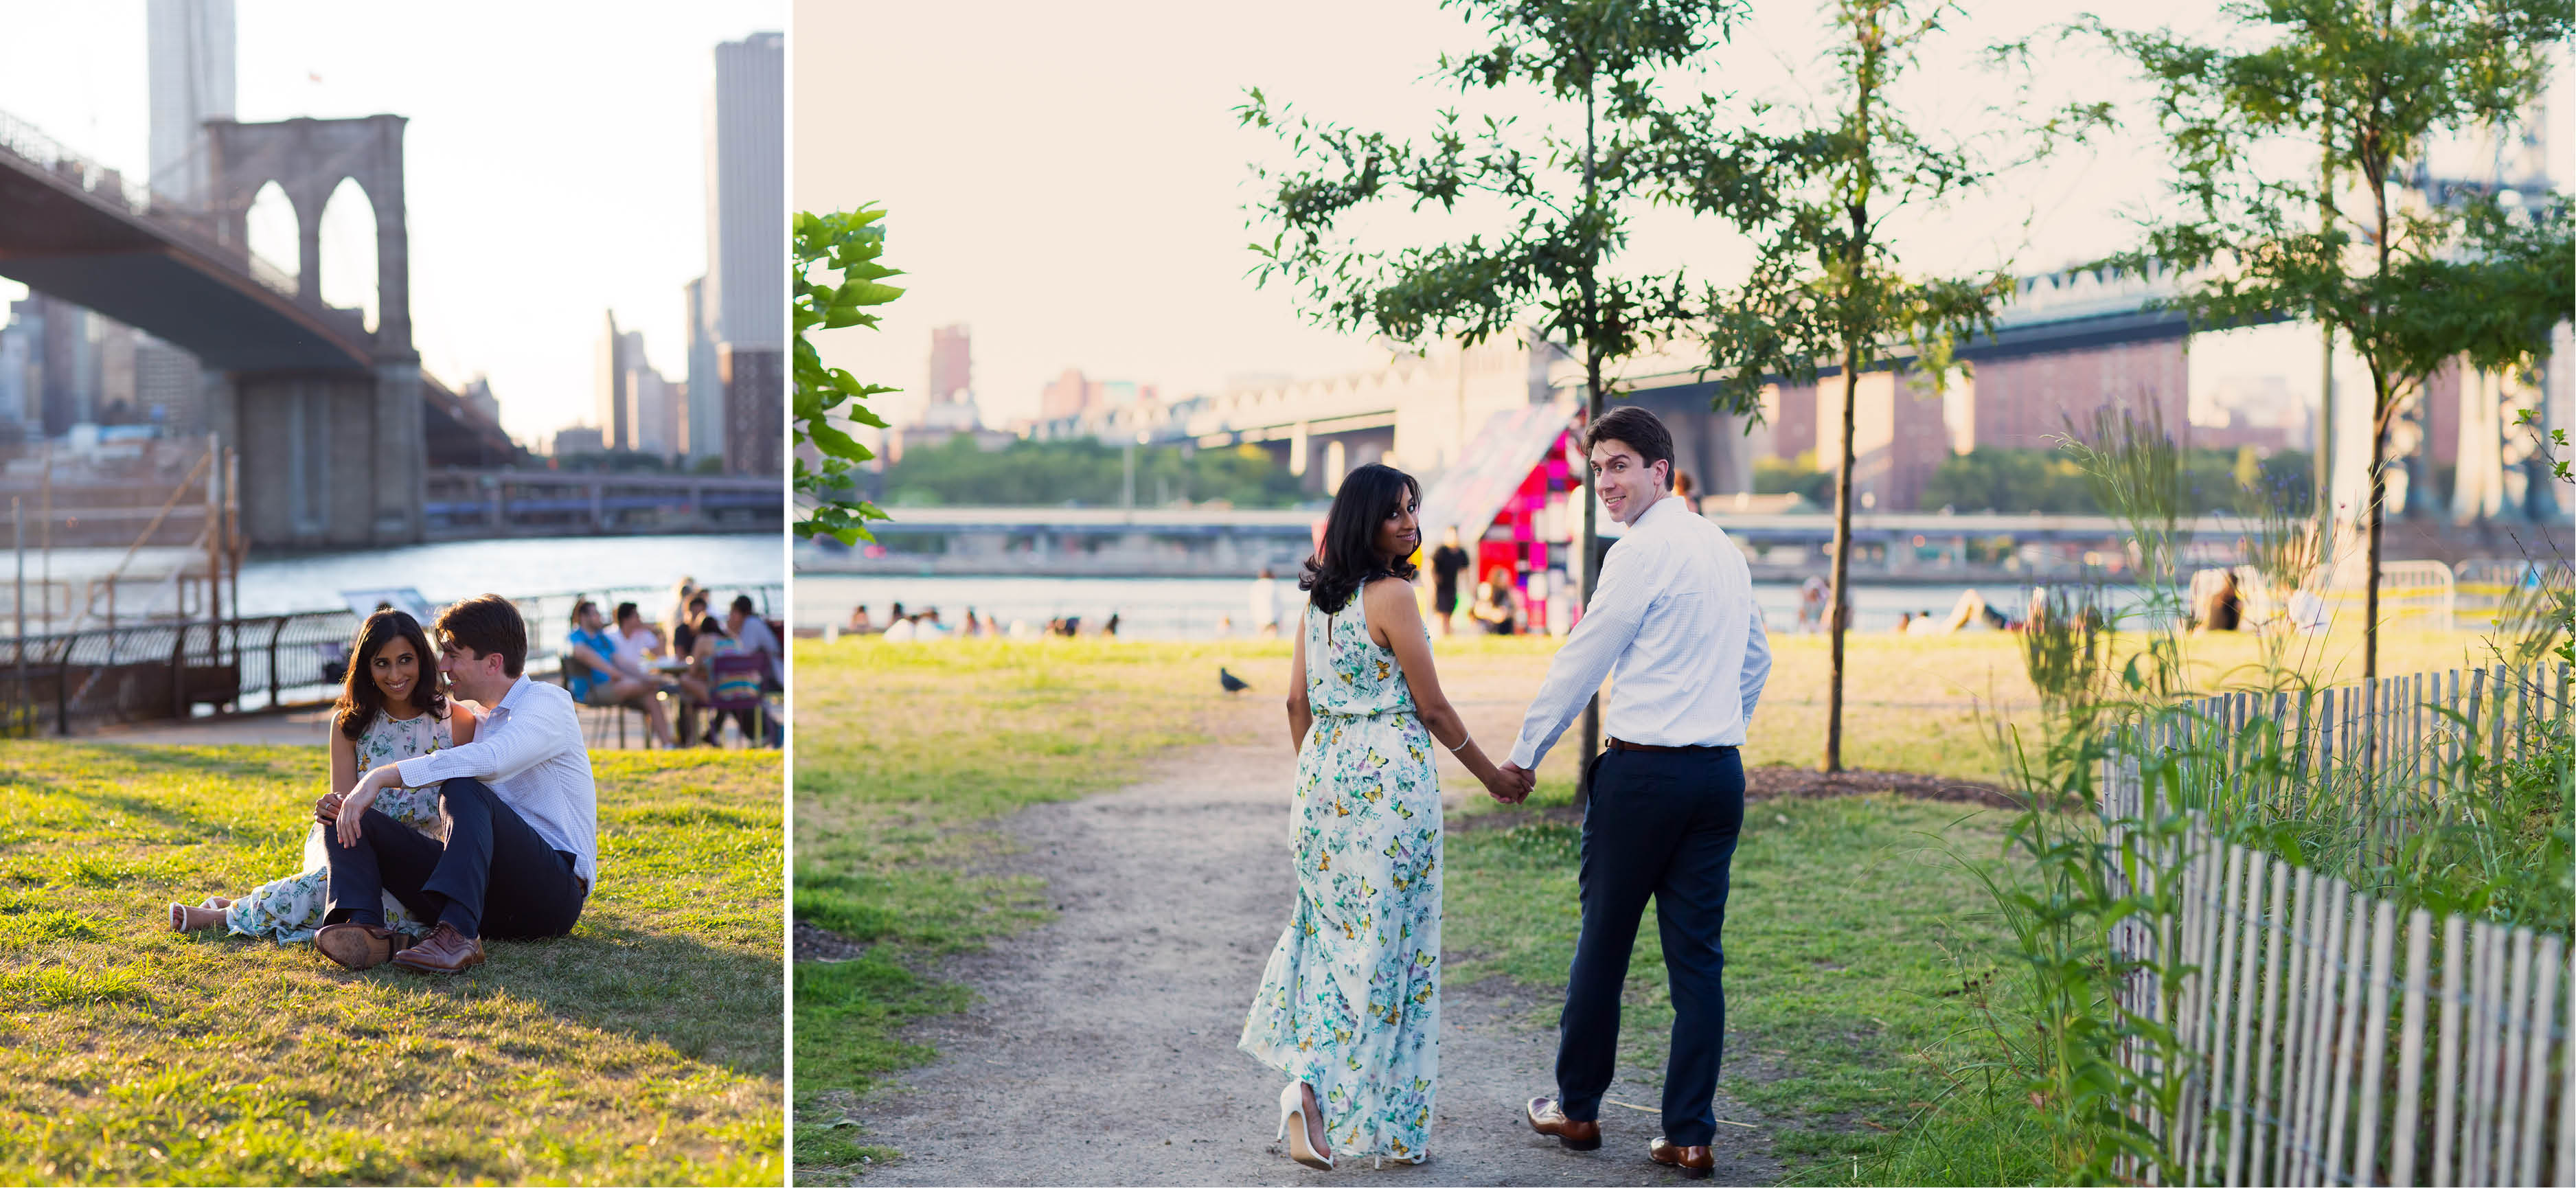 Emma_cleary_photography dumbo engagement11